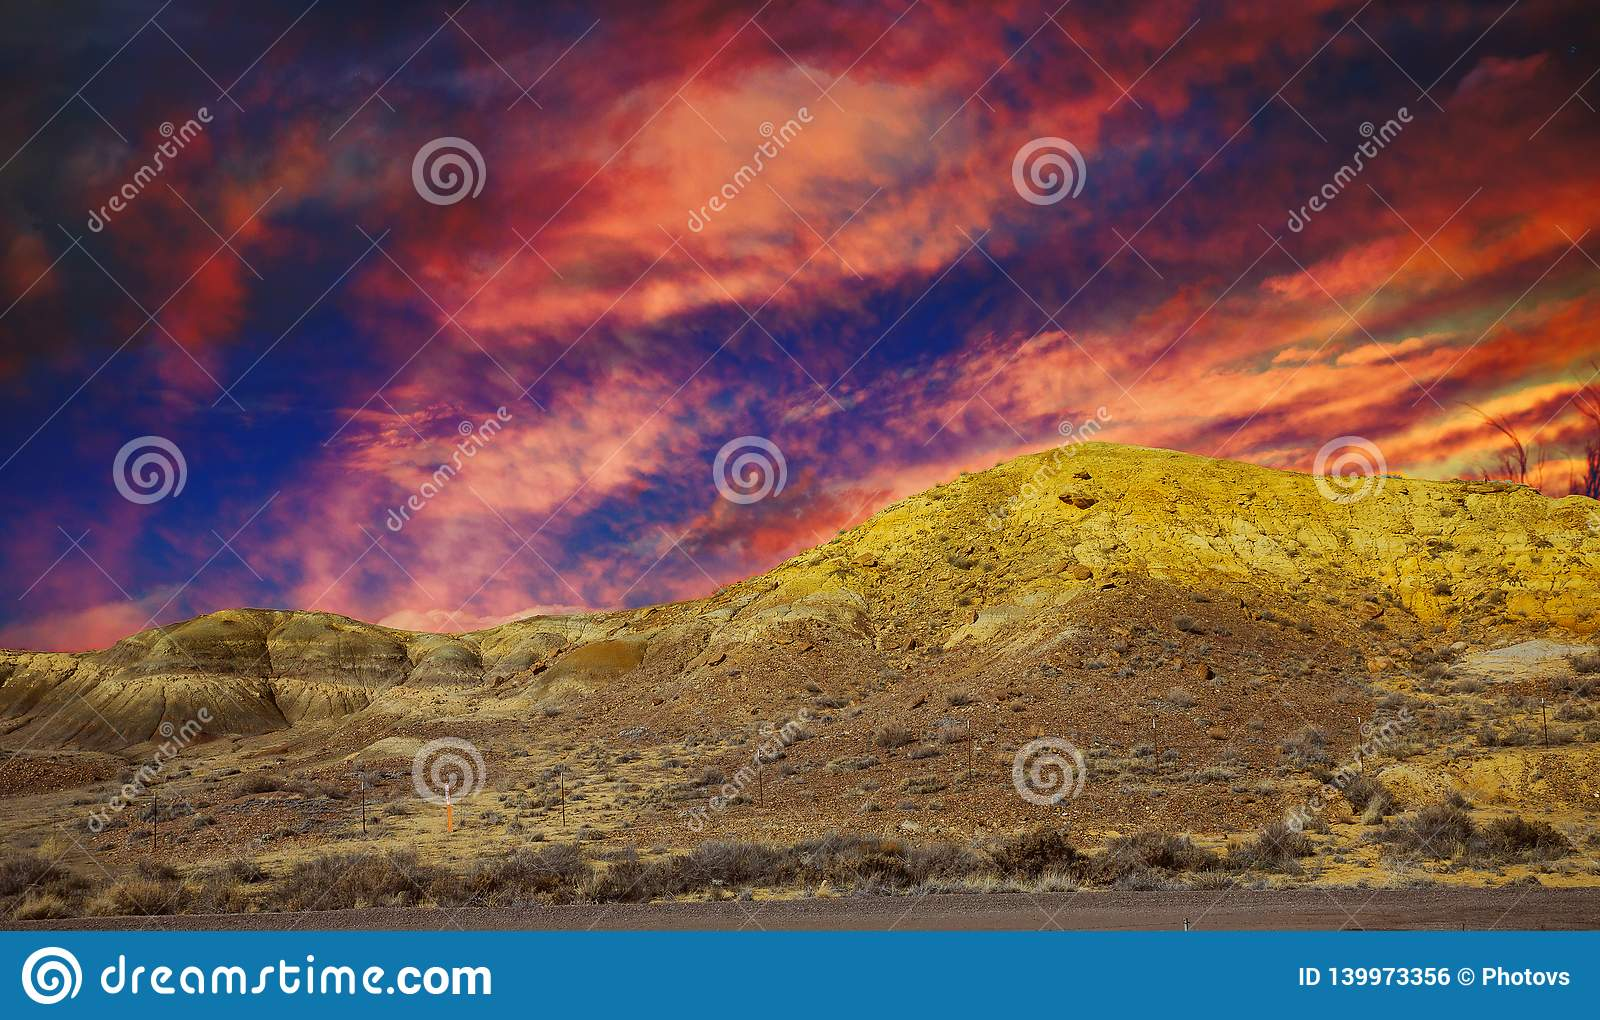 Natural Area in the mountains, New Mexico landscape with sunset